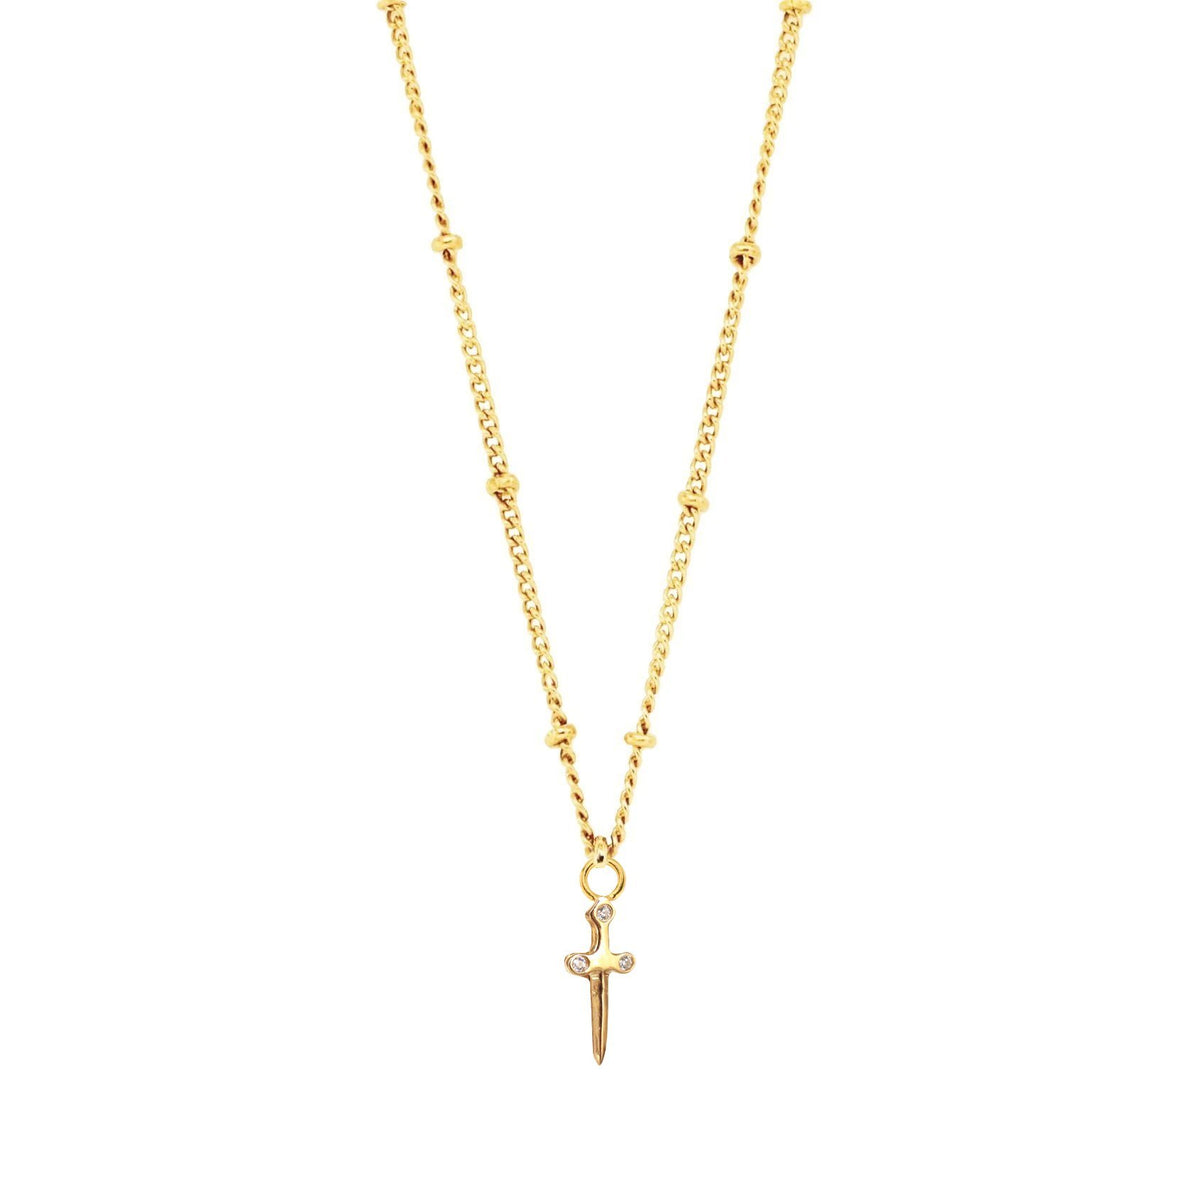 MINI PROTECT SWORD ICON - CUBIC ZIRCONIA & GOLD - SO PRETTY CARA COTTER